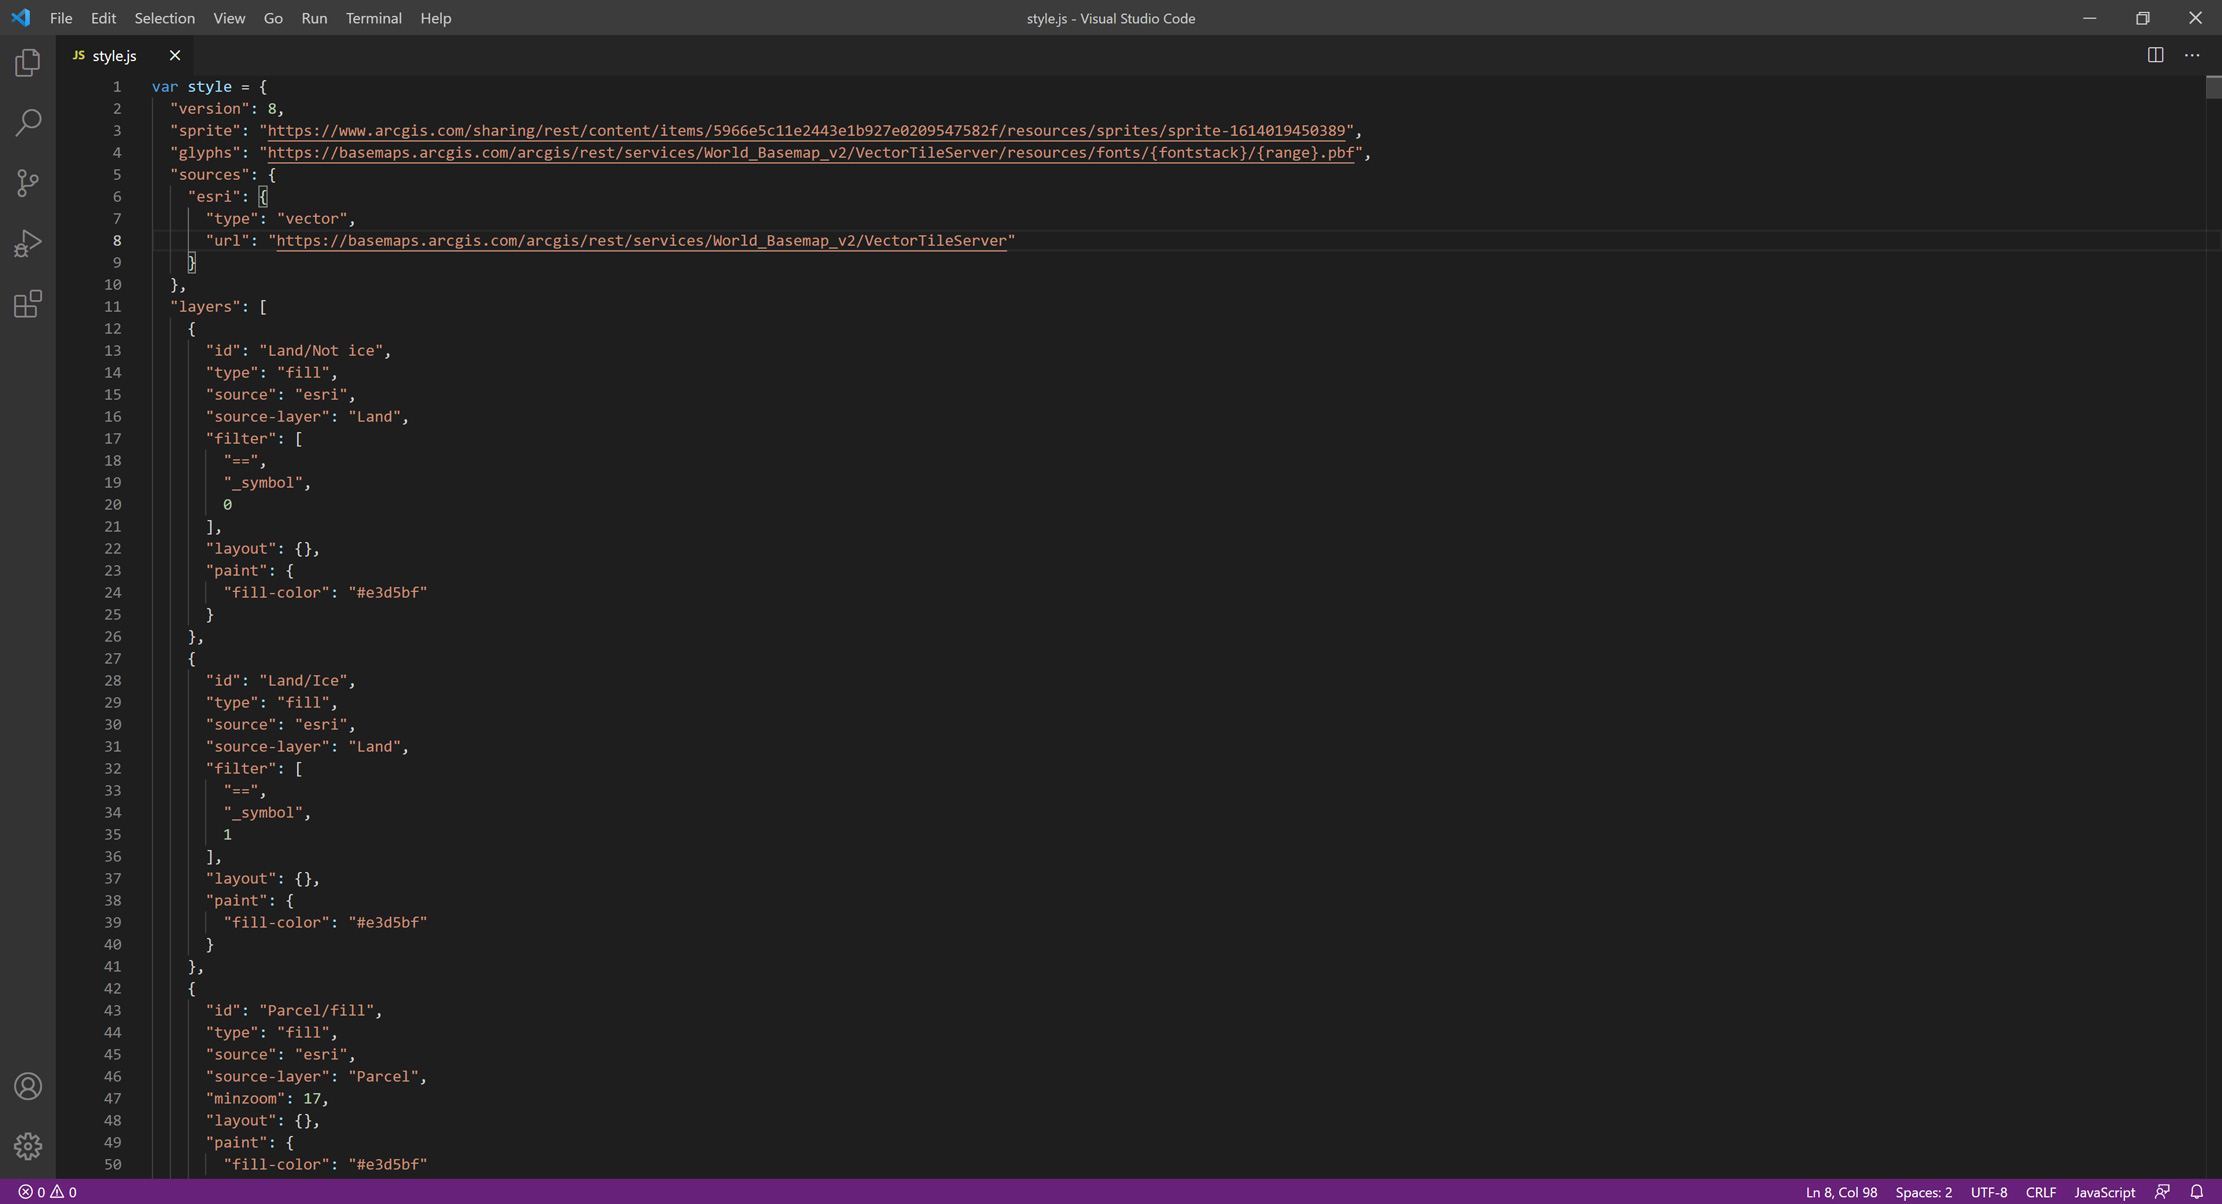 Picture 1: Saving the style for my Esri Vector Basemap in JSON format as a JavaScript file.